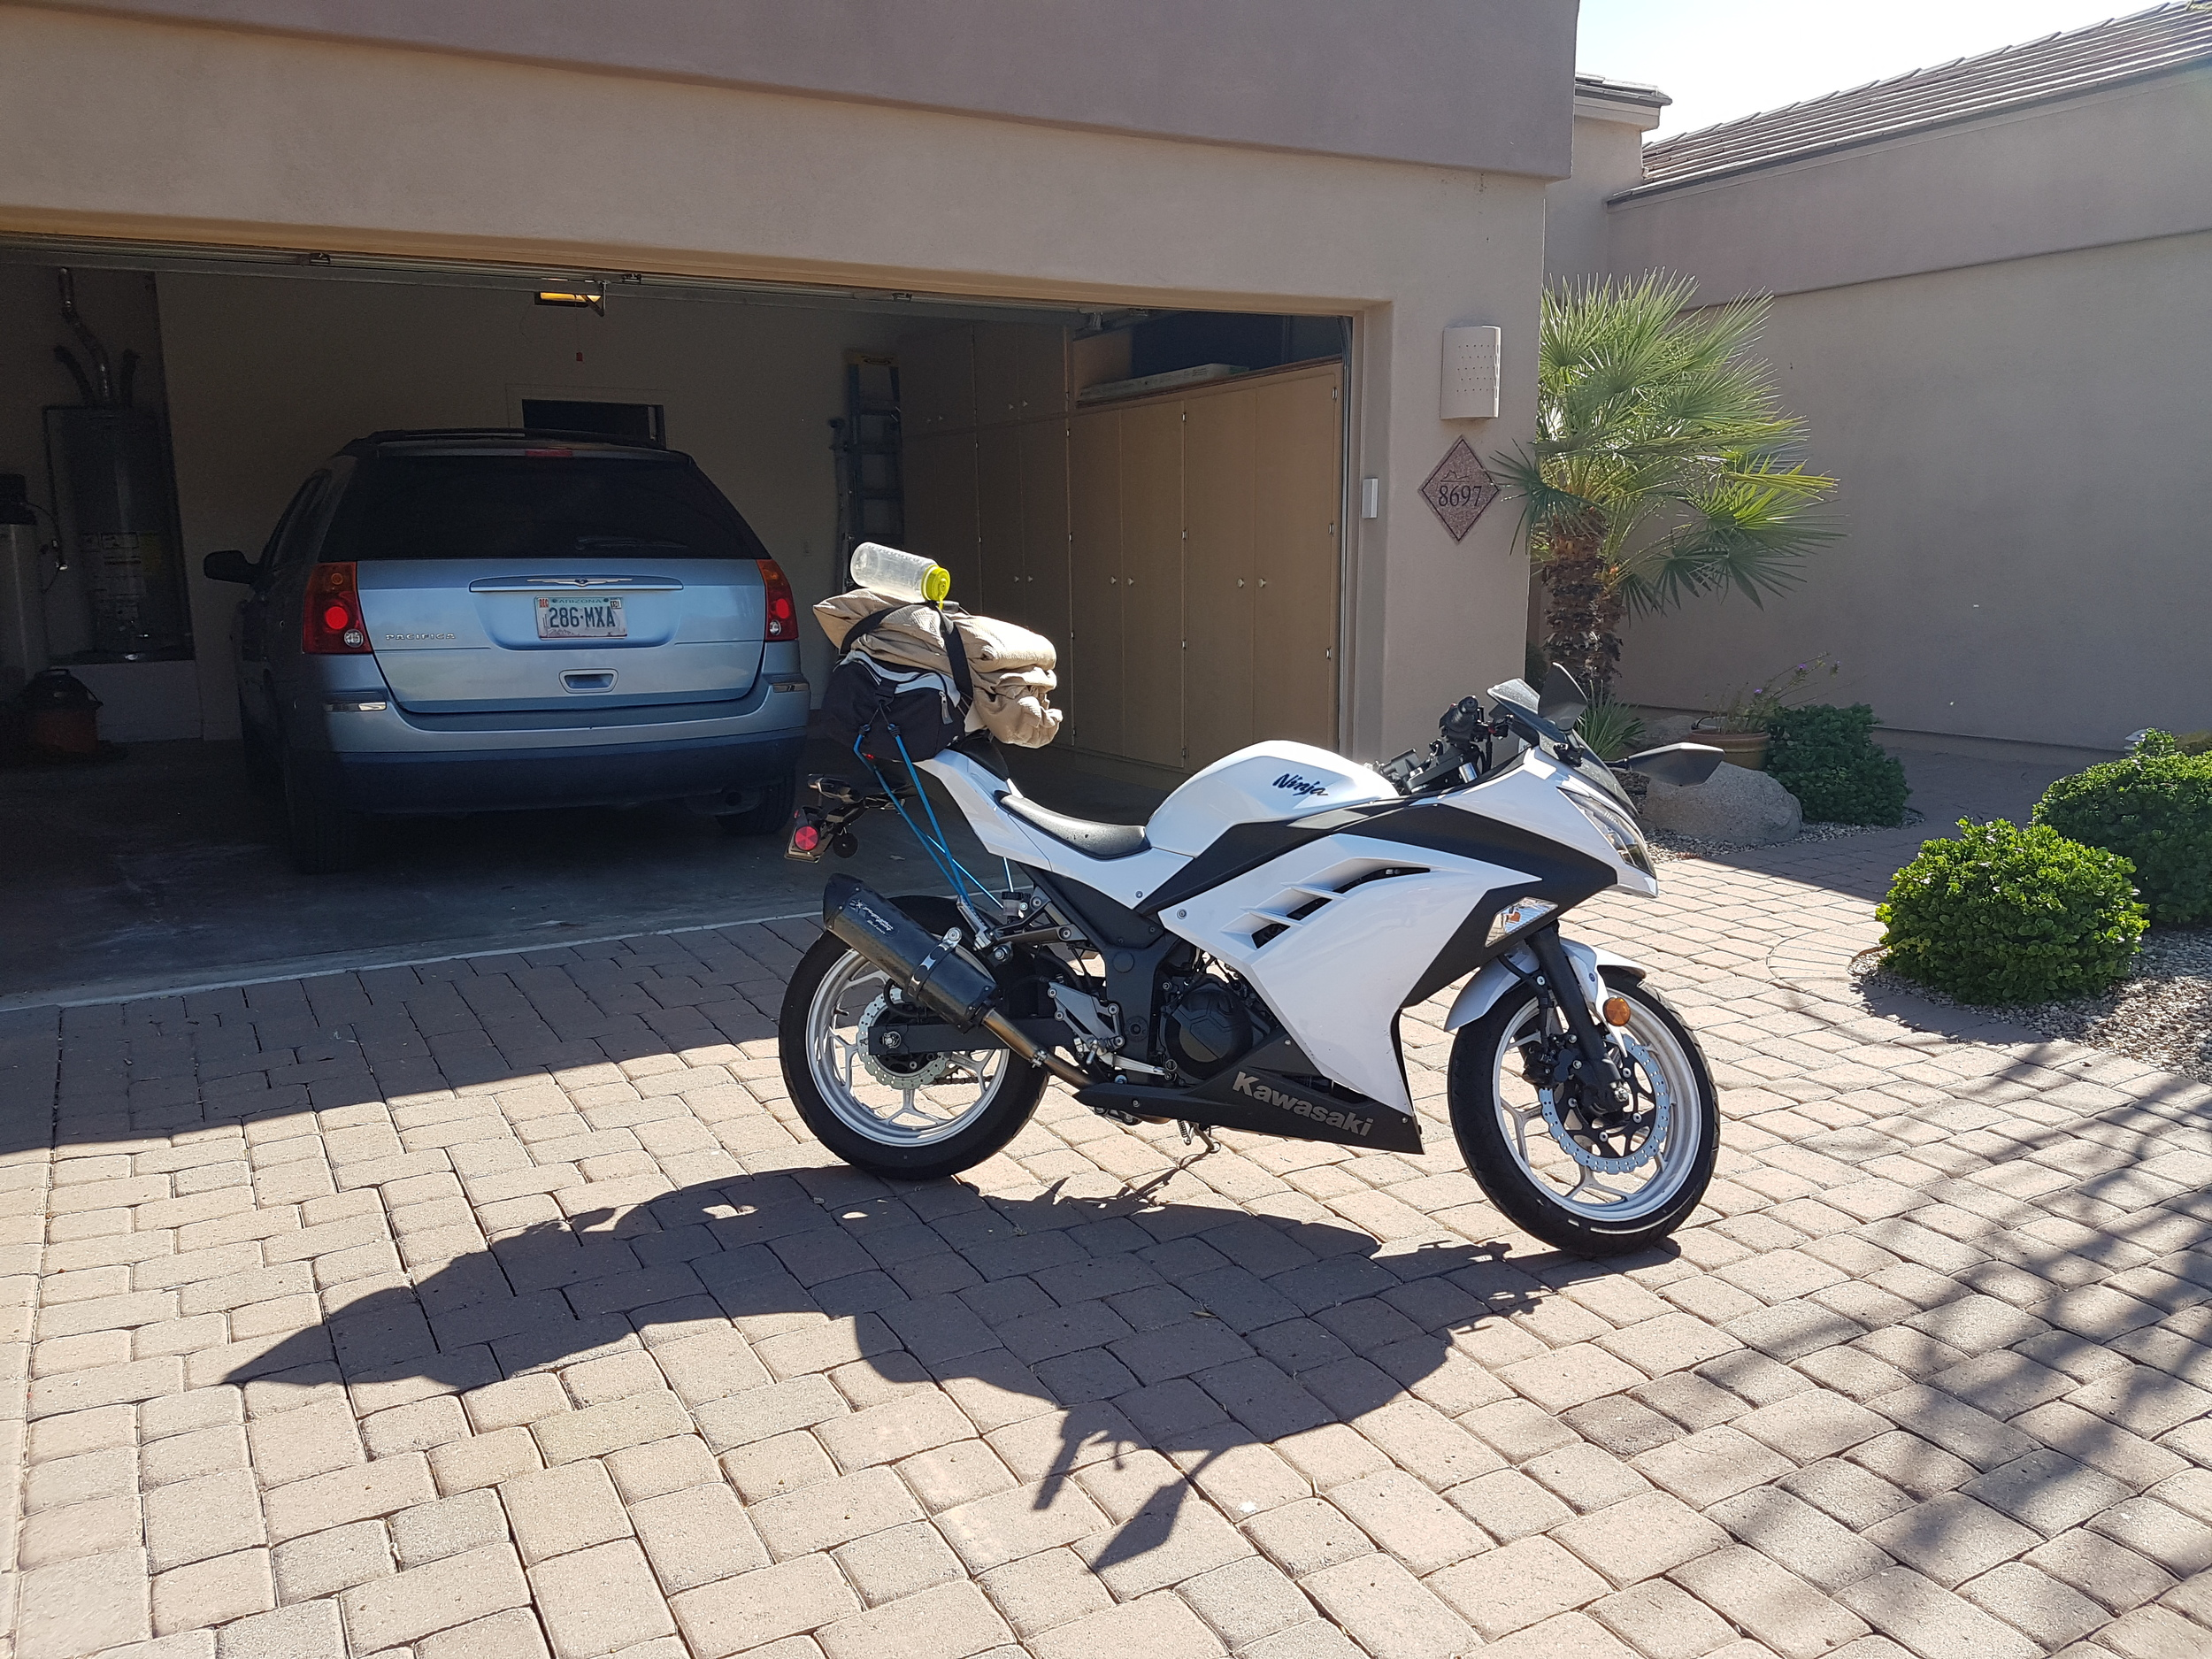 Meanwhile, Benjamin flew to Phoenix to pick up his bike and plans to intercept the Fiat in Flagstaff.